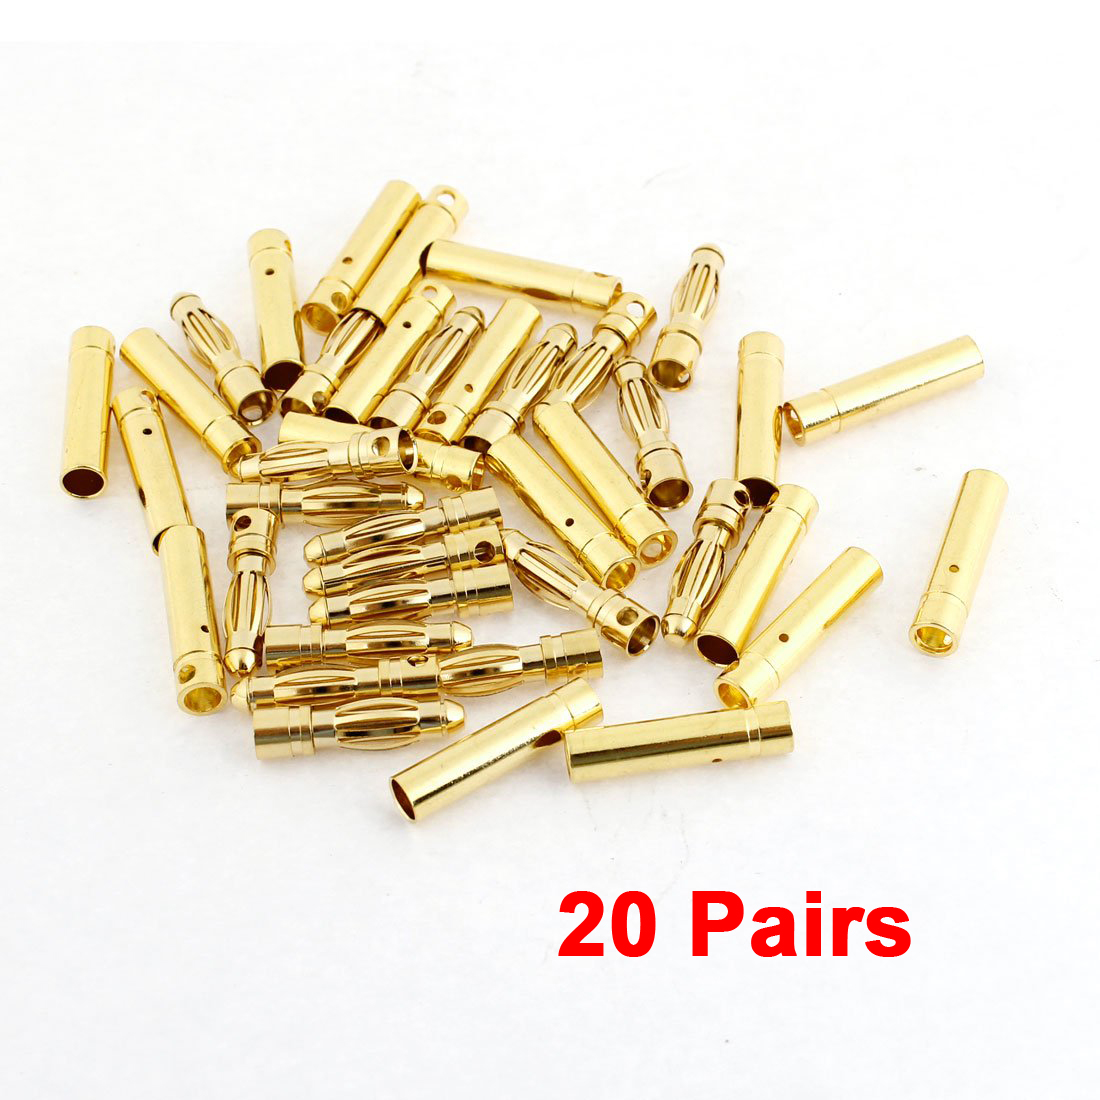 PROMOTION!New 20 Pairs Gold Tone Metal RC Banana Bullet Plug Connector Male Female 4mm imc hot new 20 pairs gold tone metal rc banana bullet plug connector male female 4mm